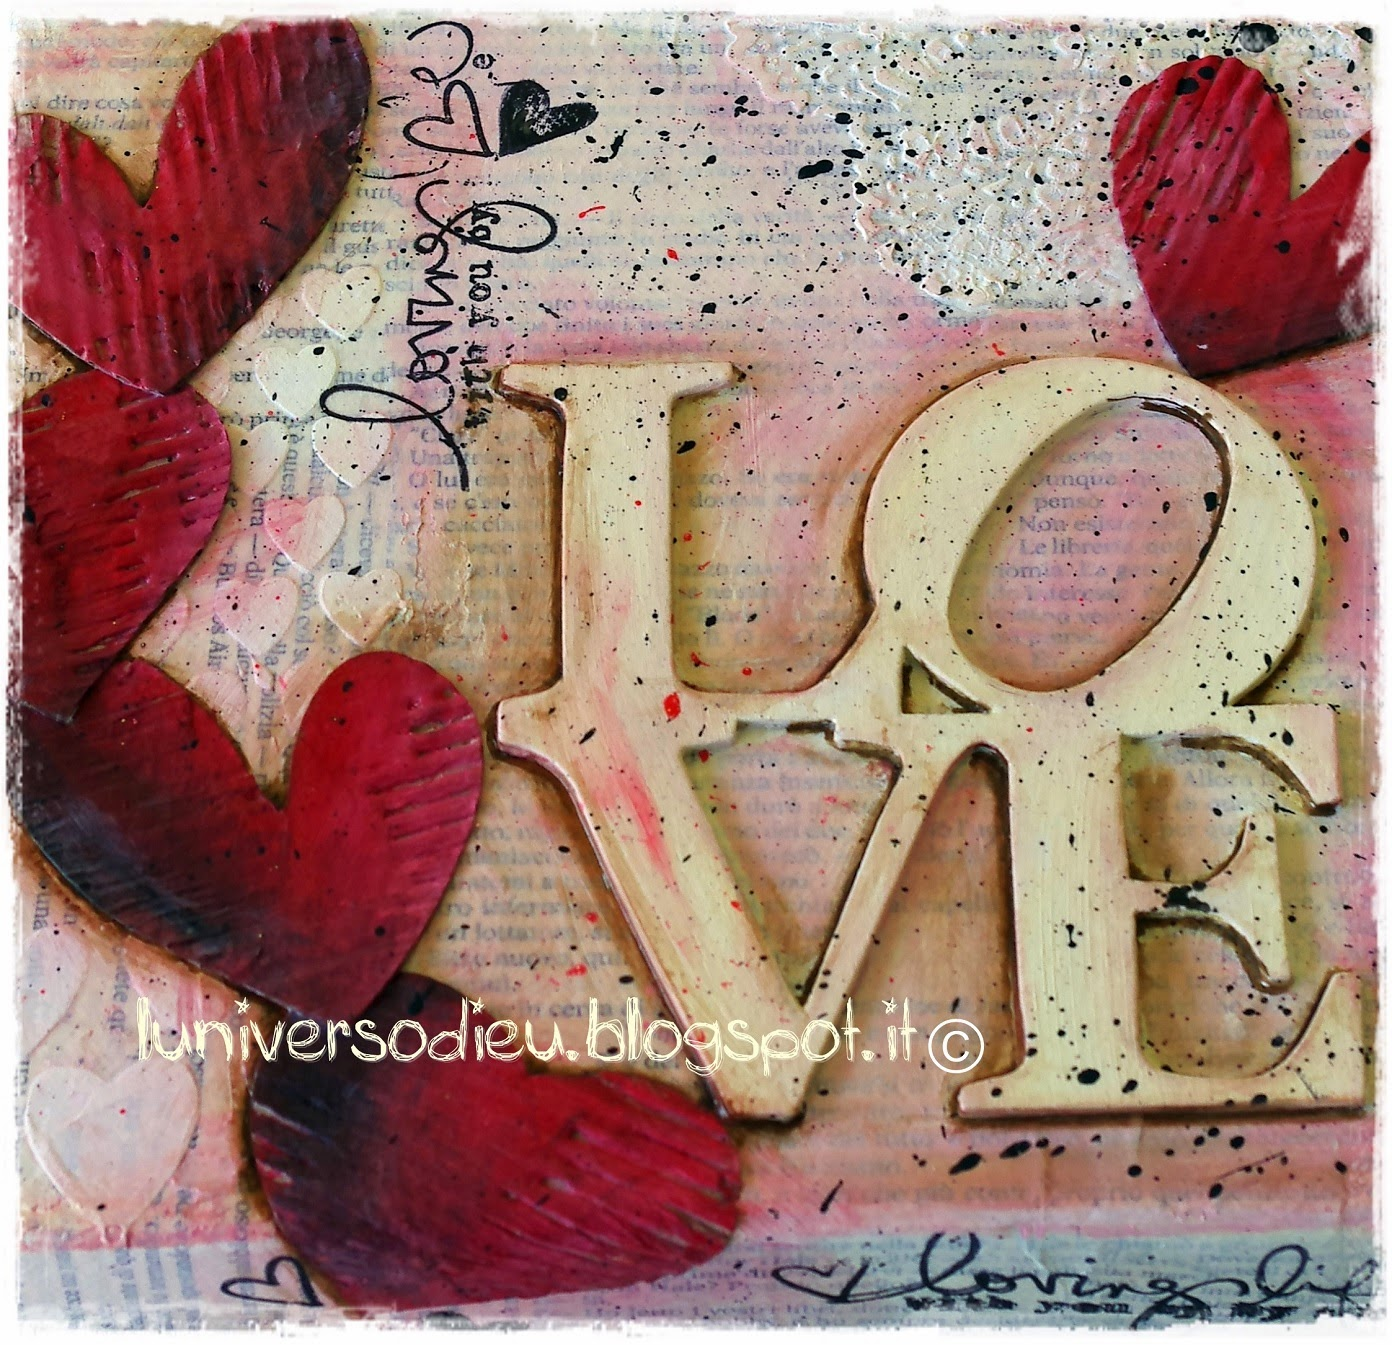 http://luniversodieu.blogspot.it/2015/01/love-per-il-2015.html